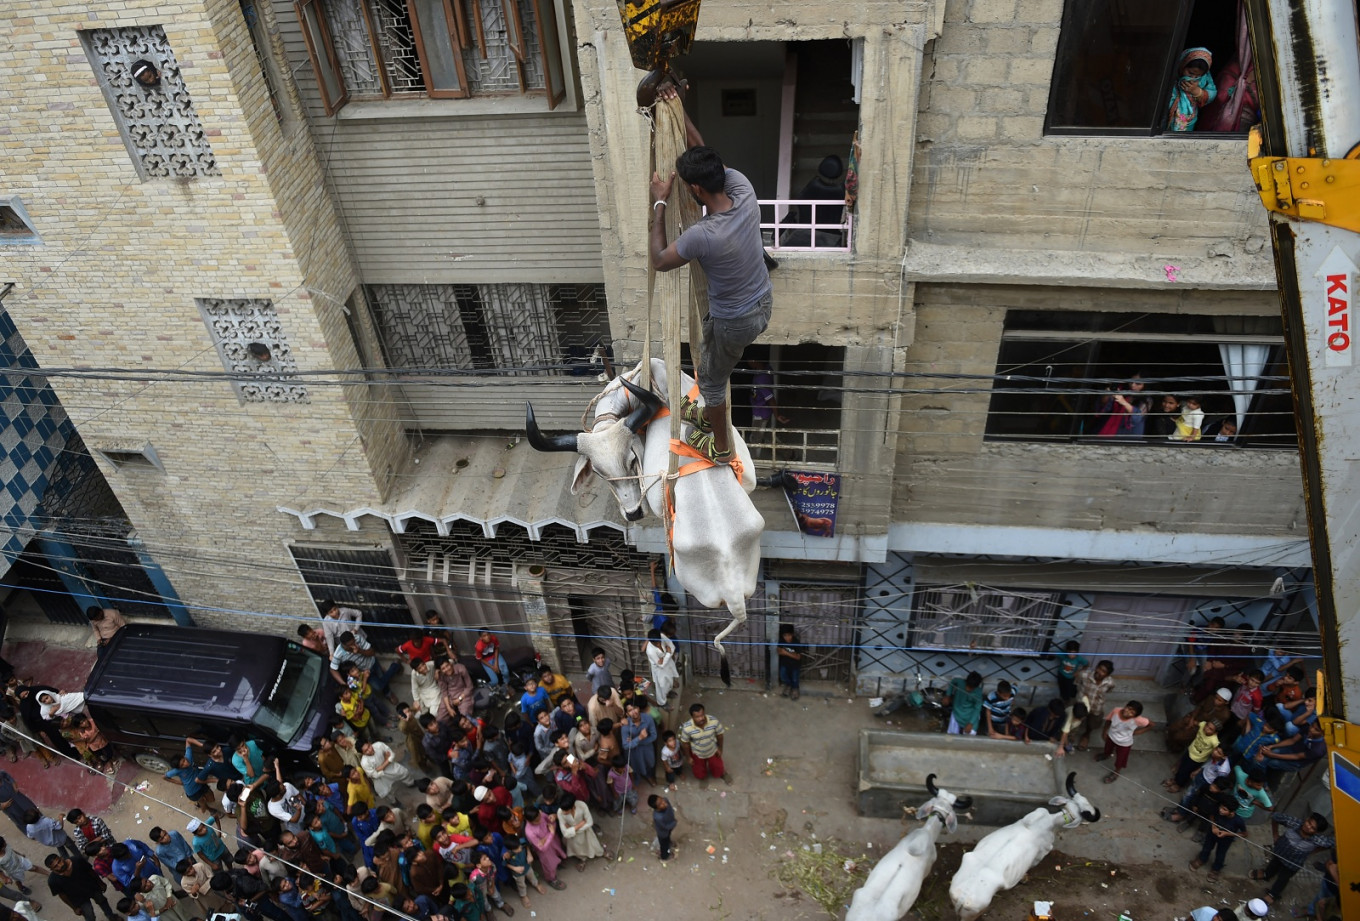 High steaks: Cows go from roofs to plates in Pakistan for Eid